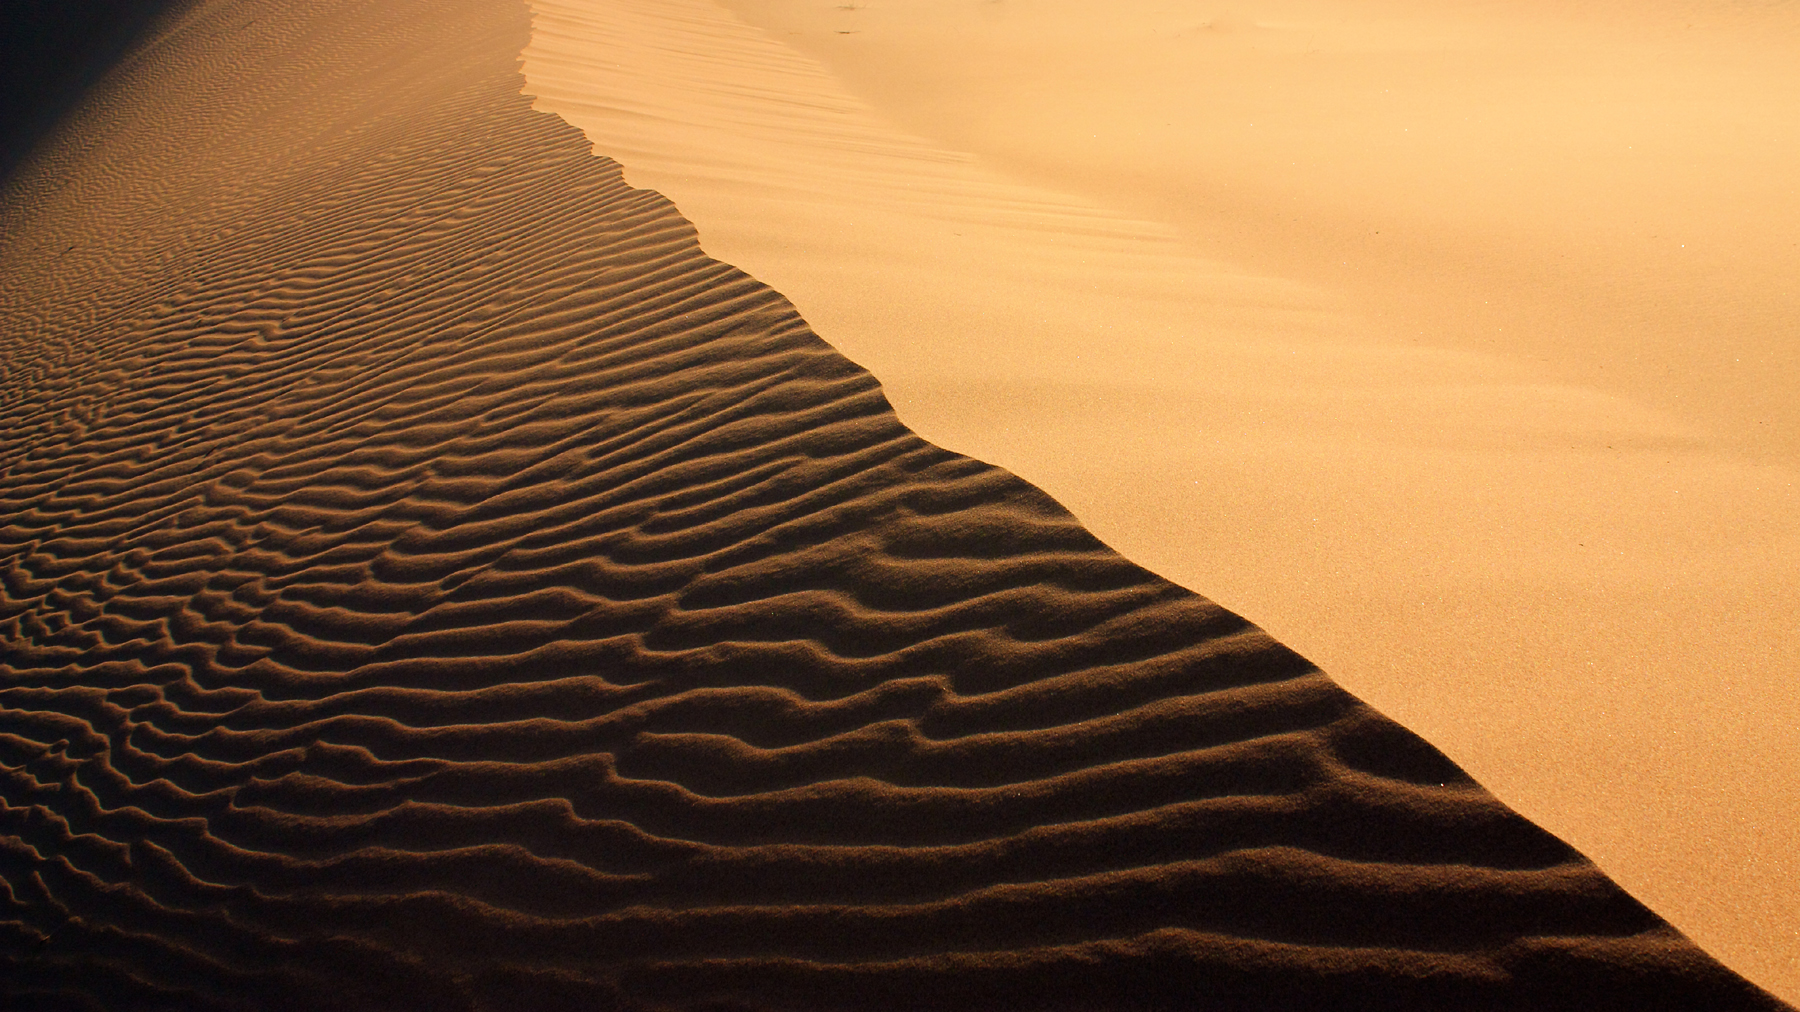 Chiseled dunes natural scenery 52450